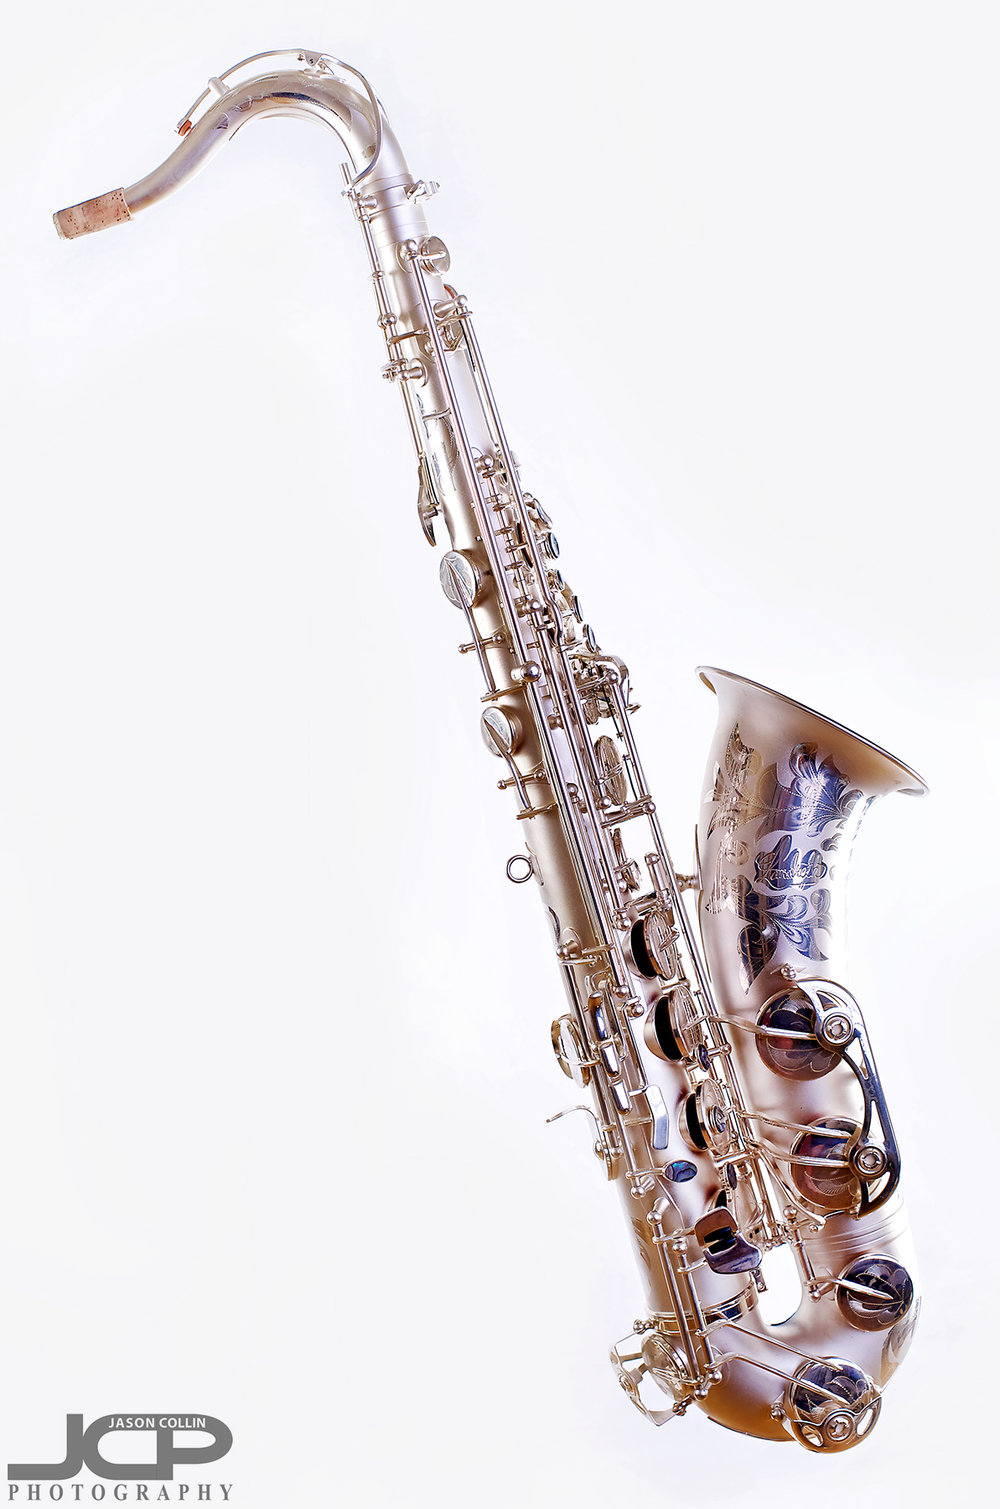 """Profile view of this saxophone with stand digitally removed -Nikon D750 with Nikkor 50mm f/1.8G lens @ f/8 1/160th ISO 100 - Strobist: Westcott Strobe Light Plus in 55"""" octagon gridded soft box main with two 43"""" shoot through umbrellas with speedlights on the white muslin background"""